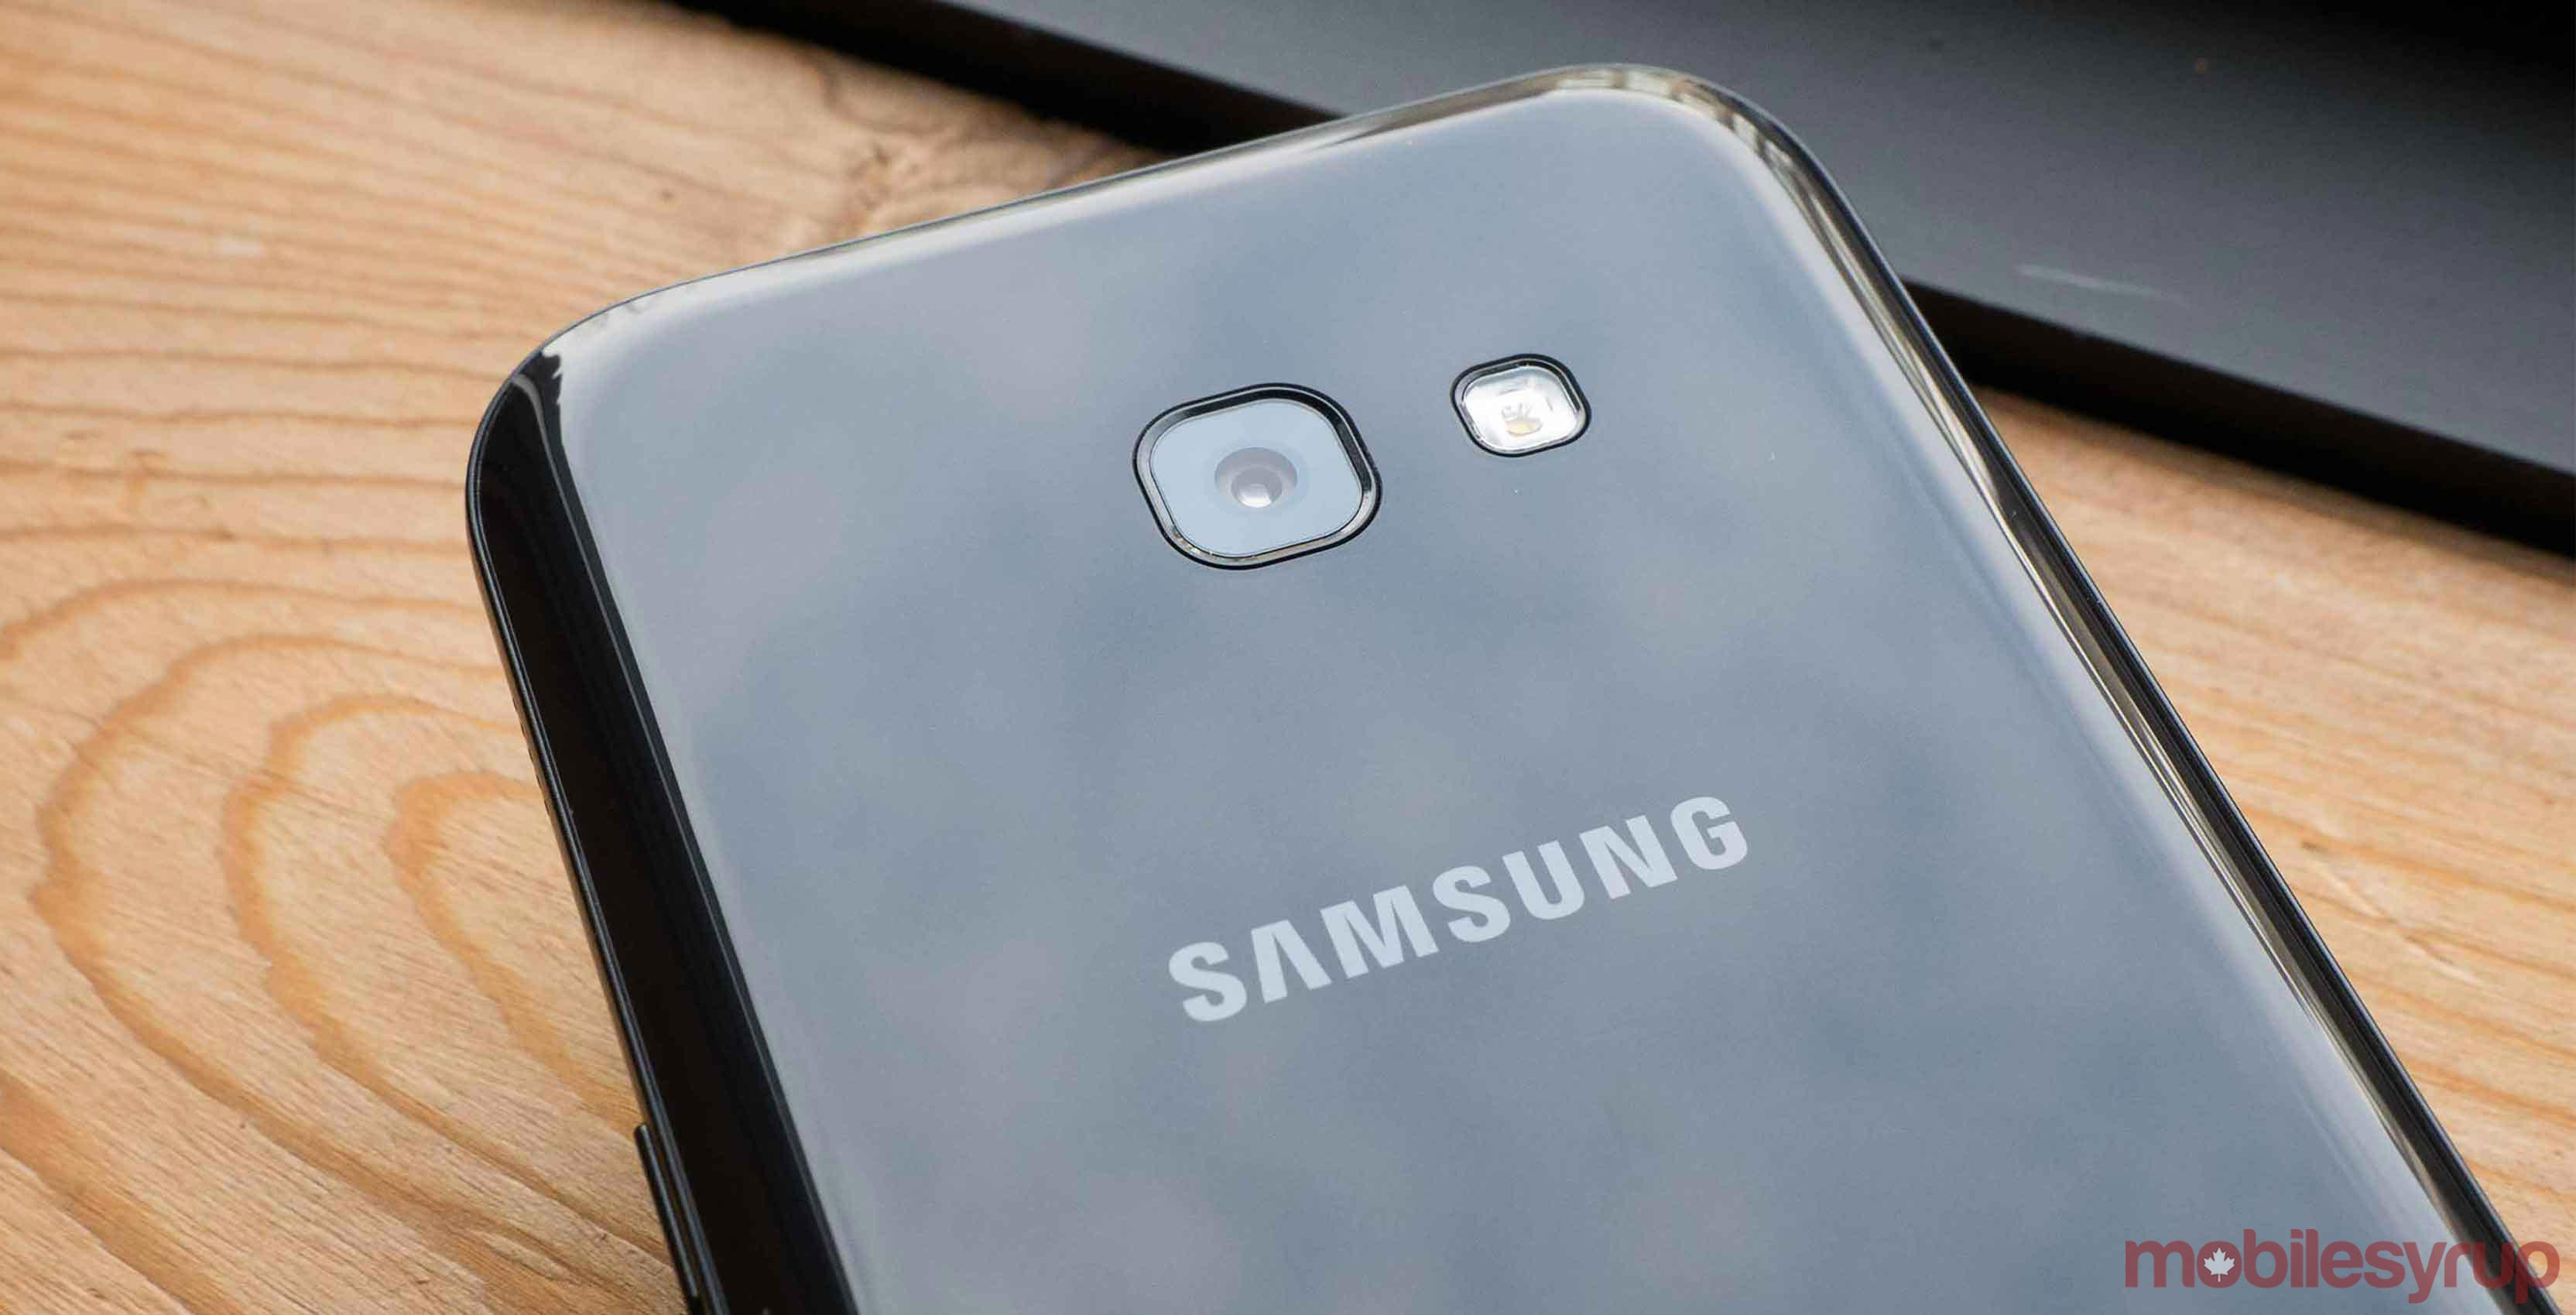 Samsung's Galaxy A5 vs the S7 and the S8